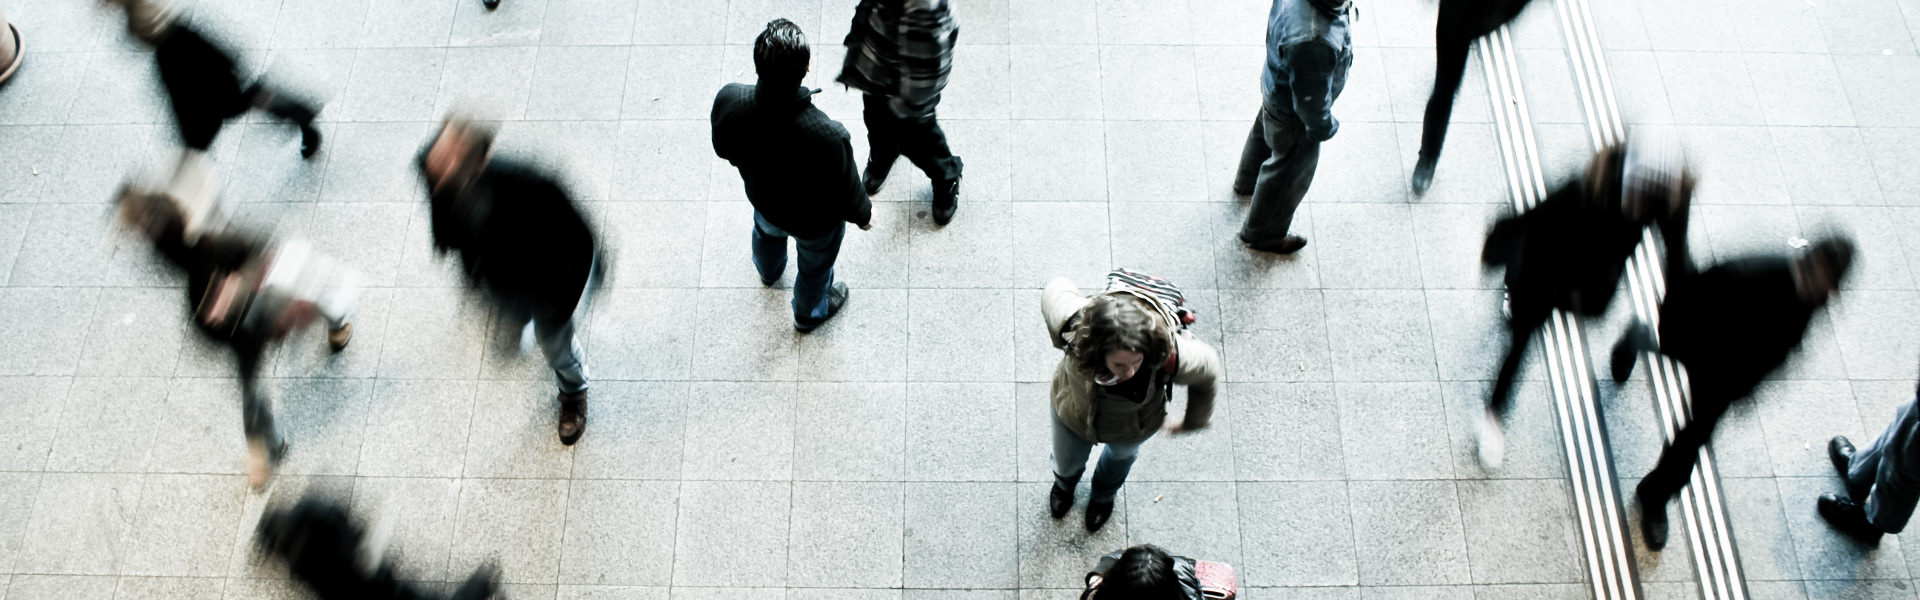 Overhead view of people walking and talking in a public space